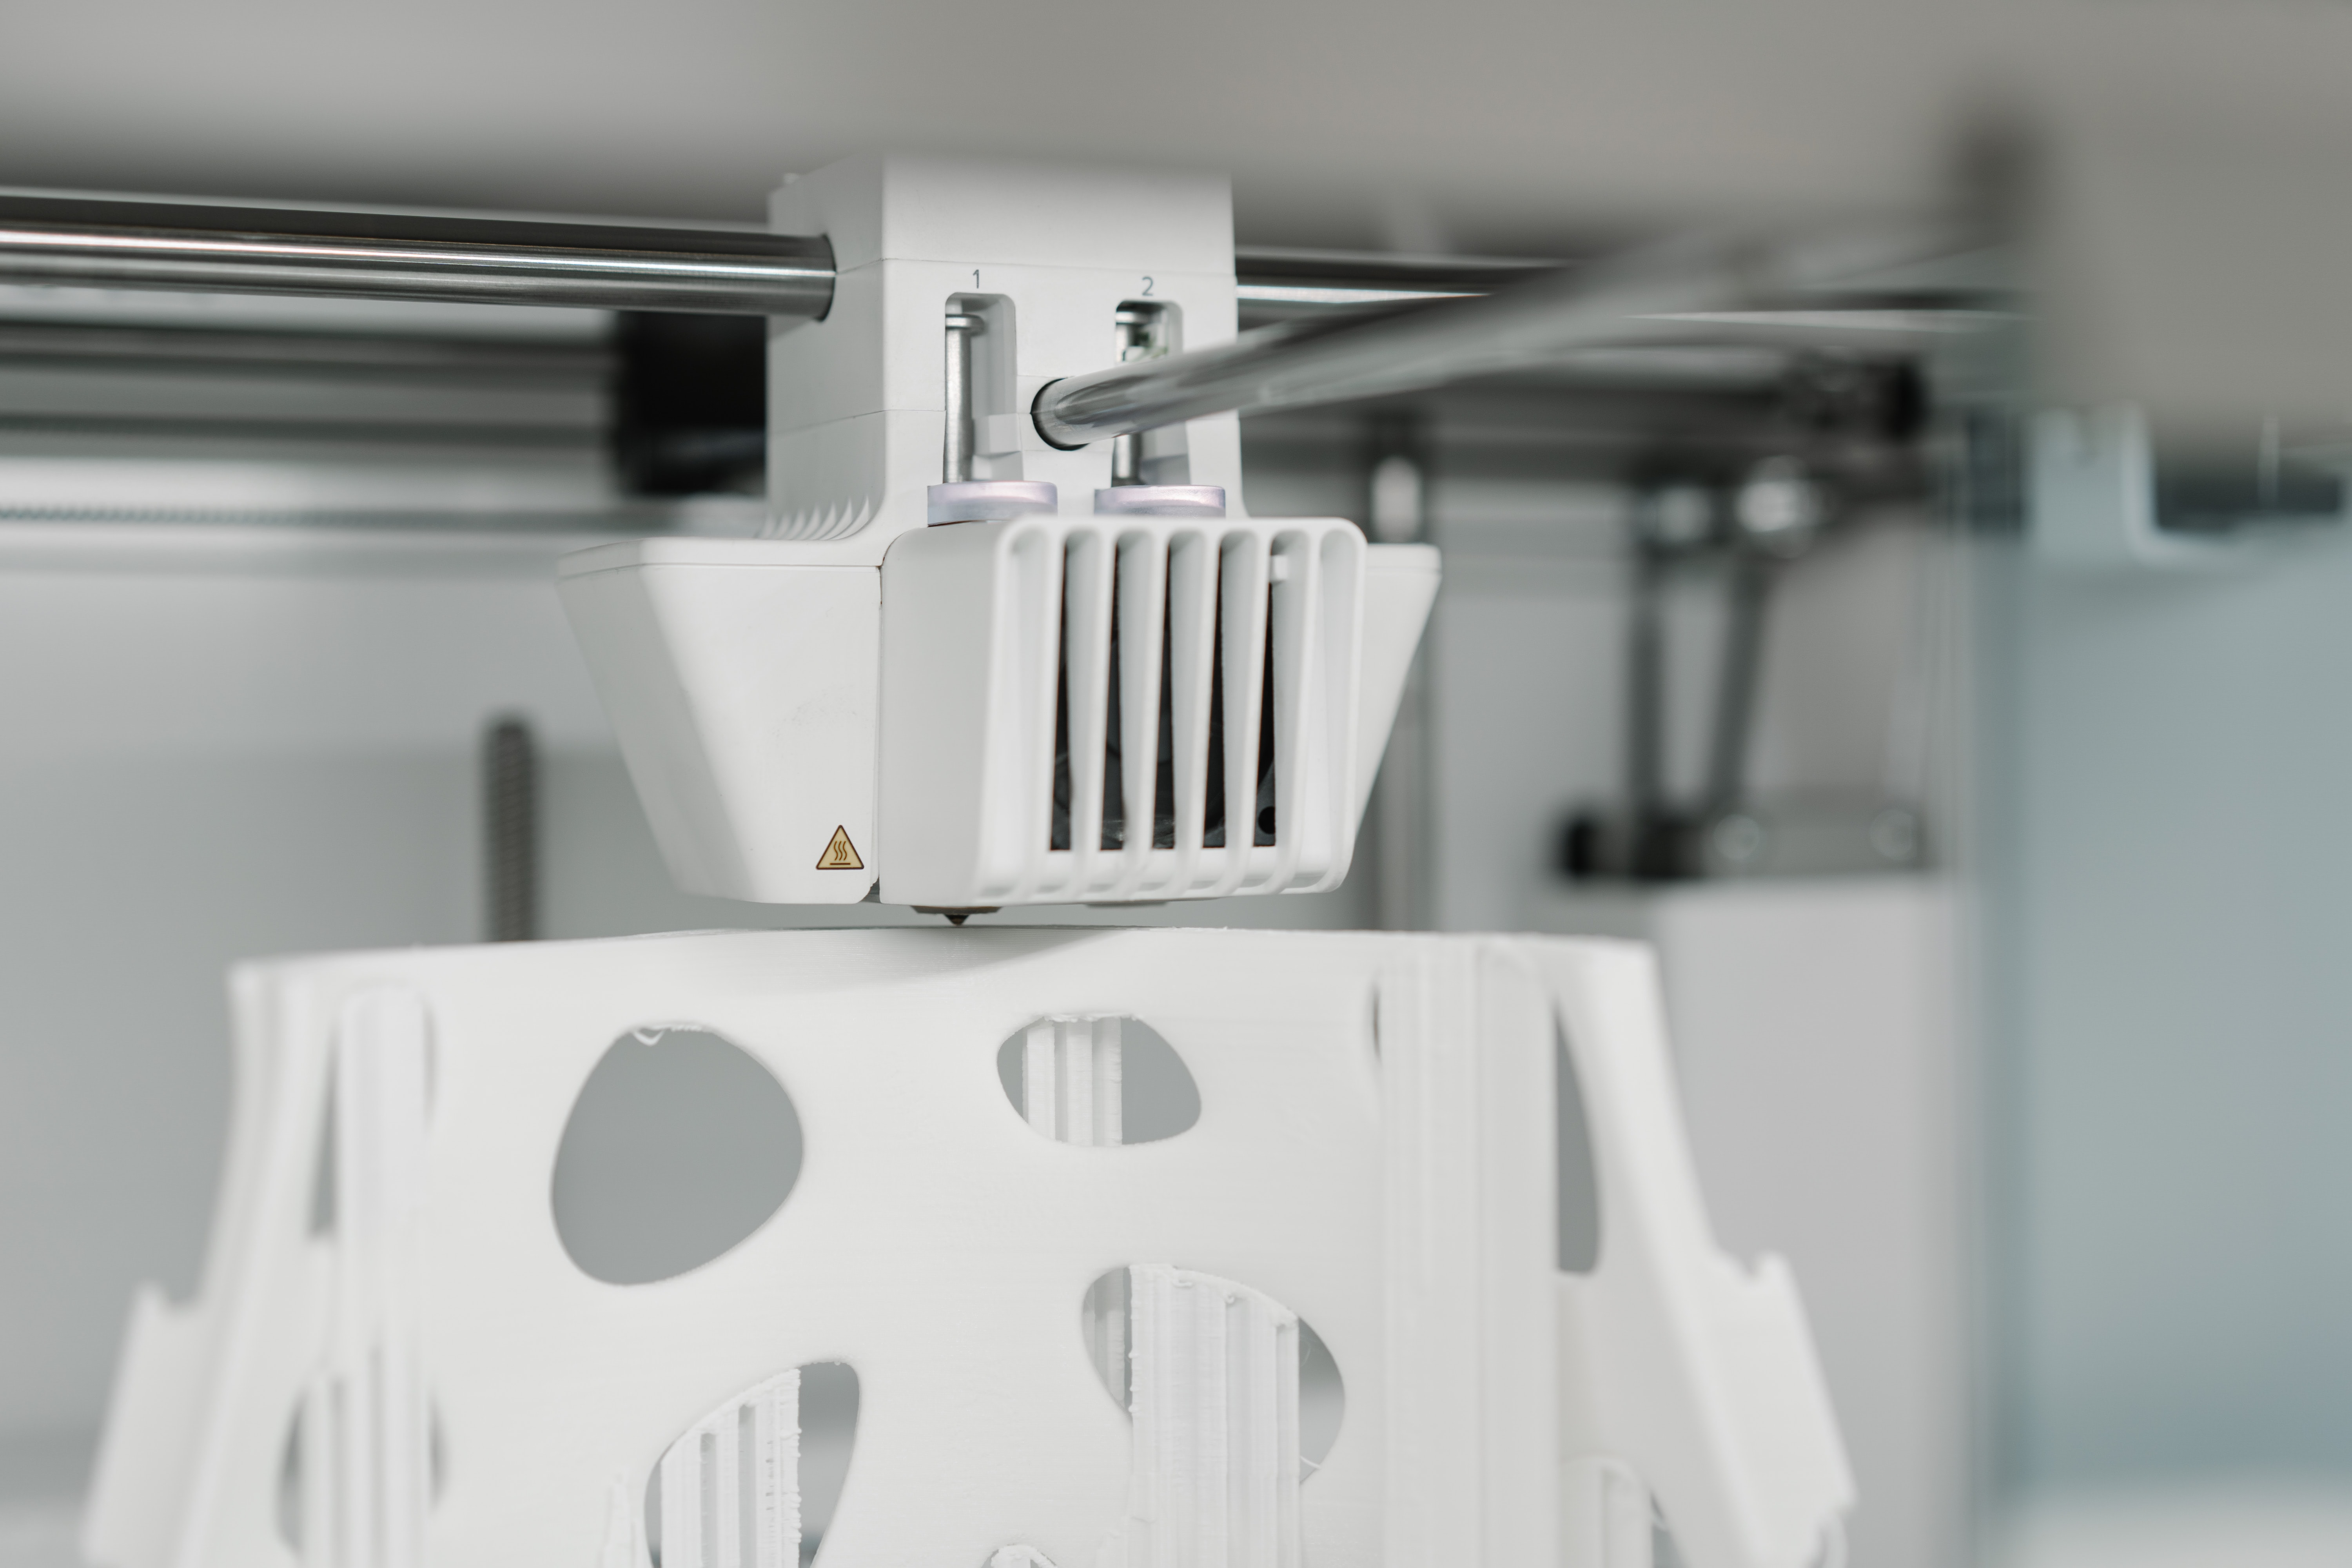 Modern Product Development Enabled by Additive Manufacturing